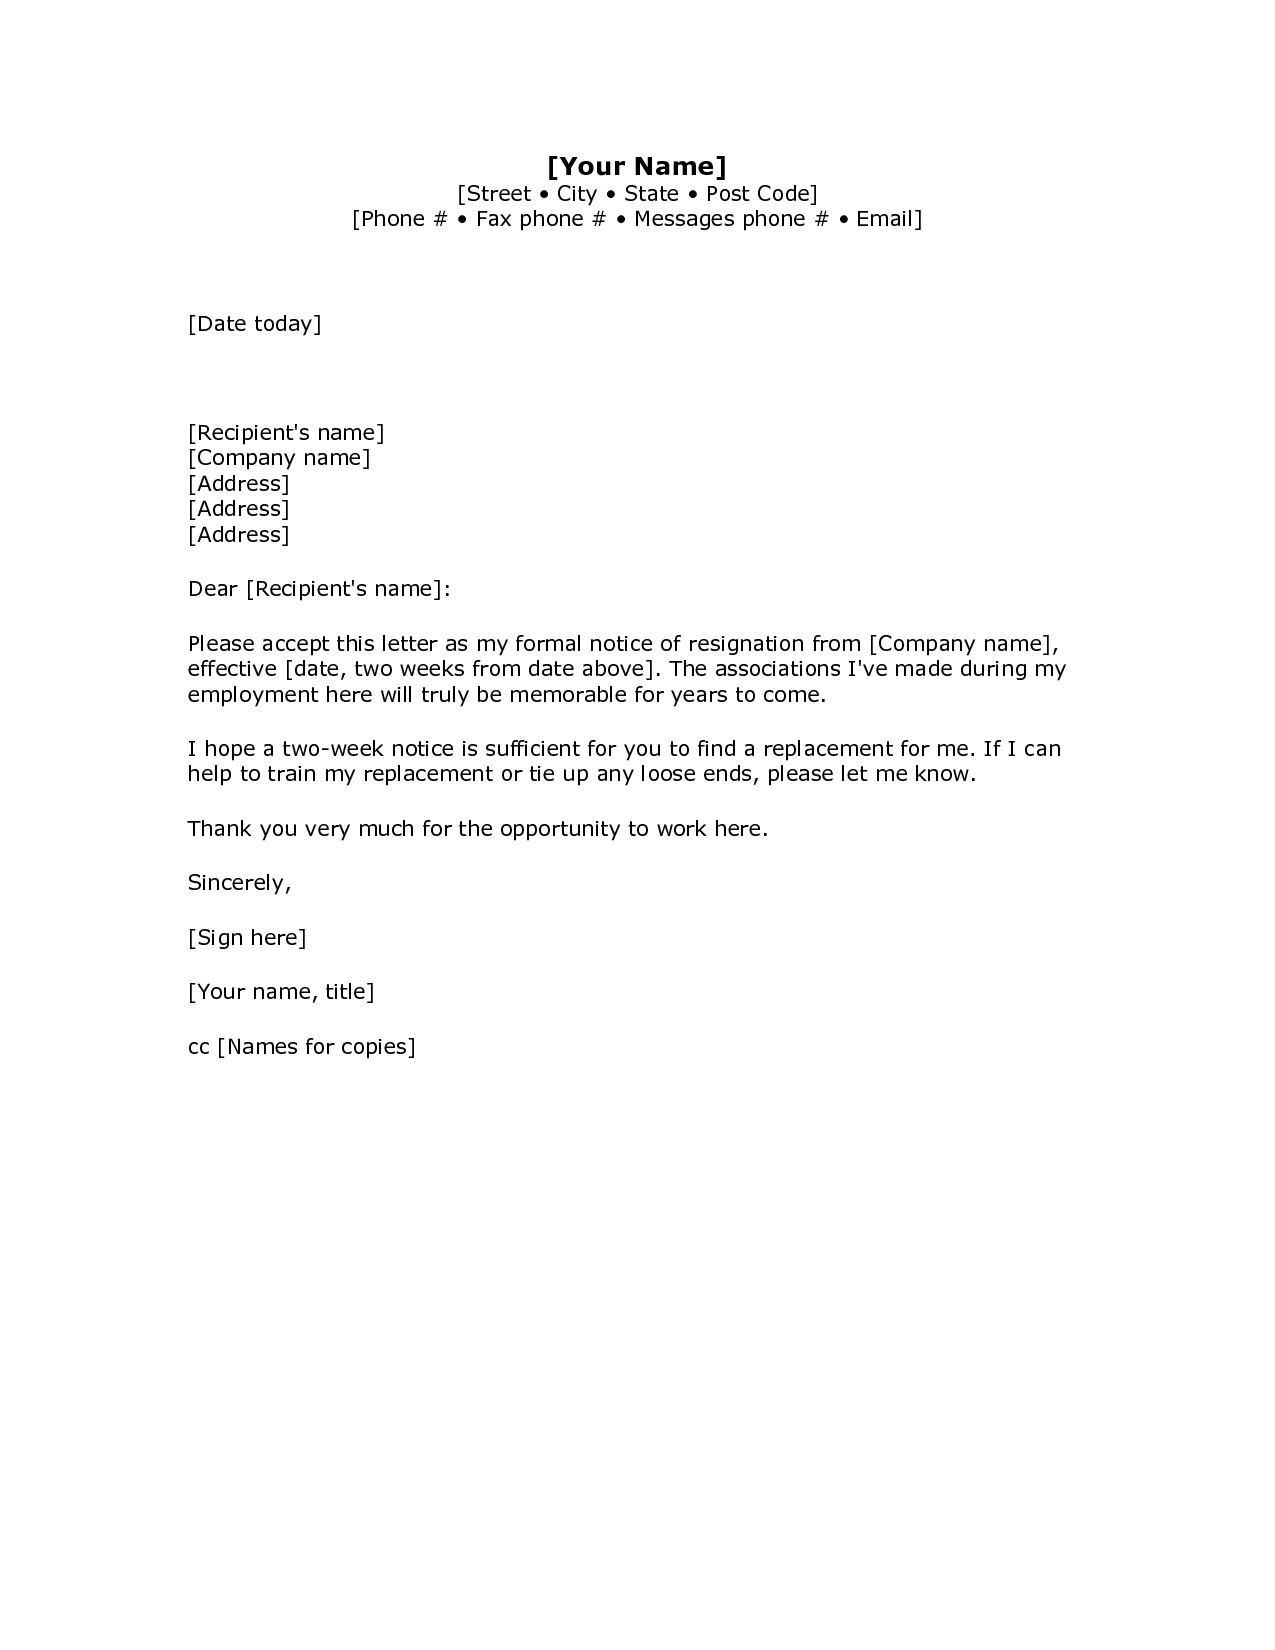 Free Online Resume Cover Letter Template - Resume Cover Leter Elegant Model Cover Letter Lovely Resume Cover